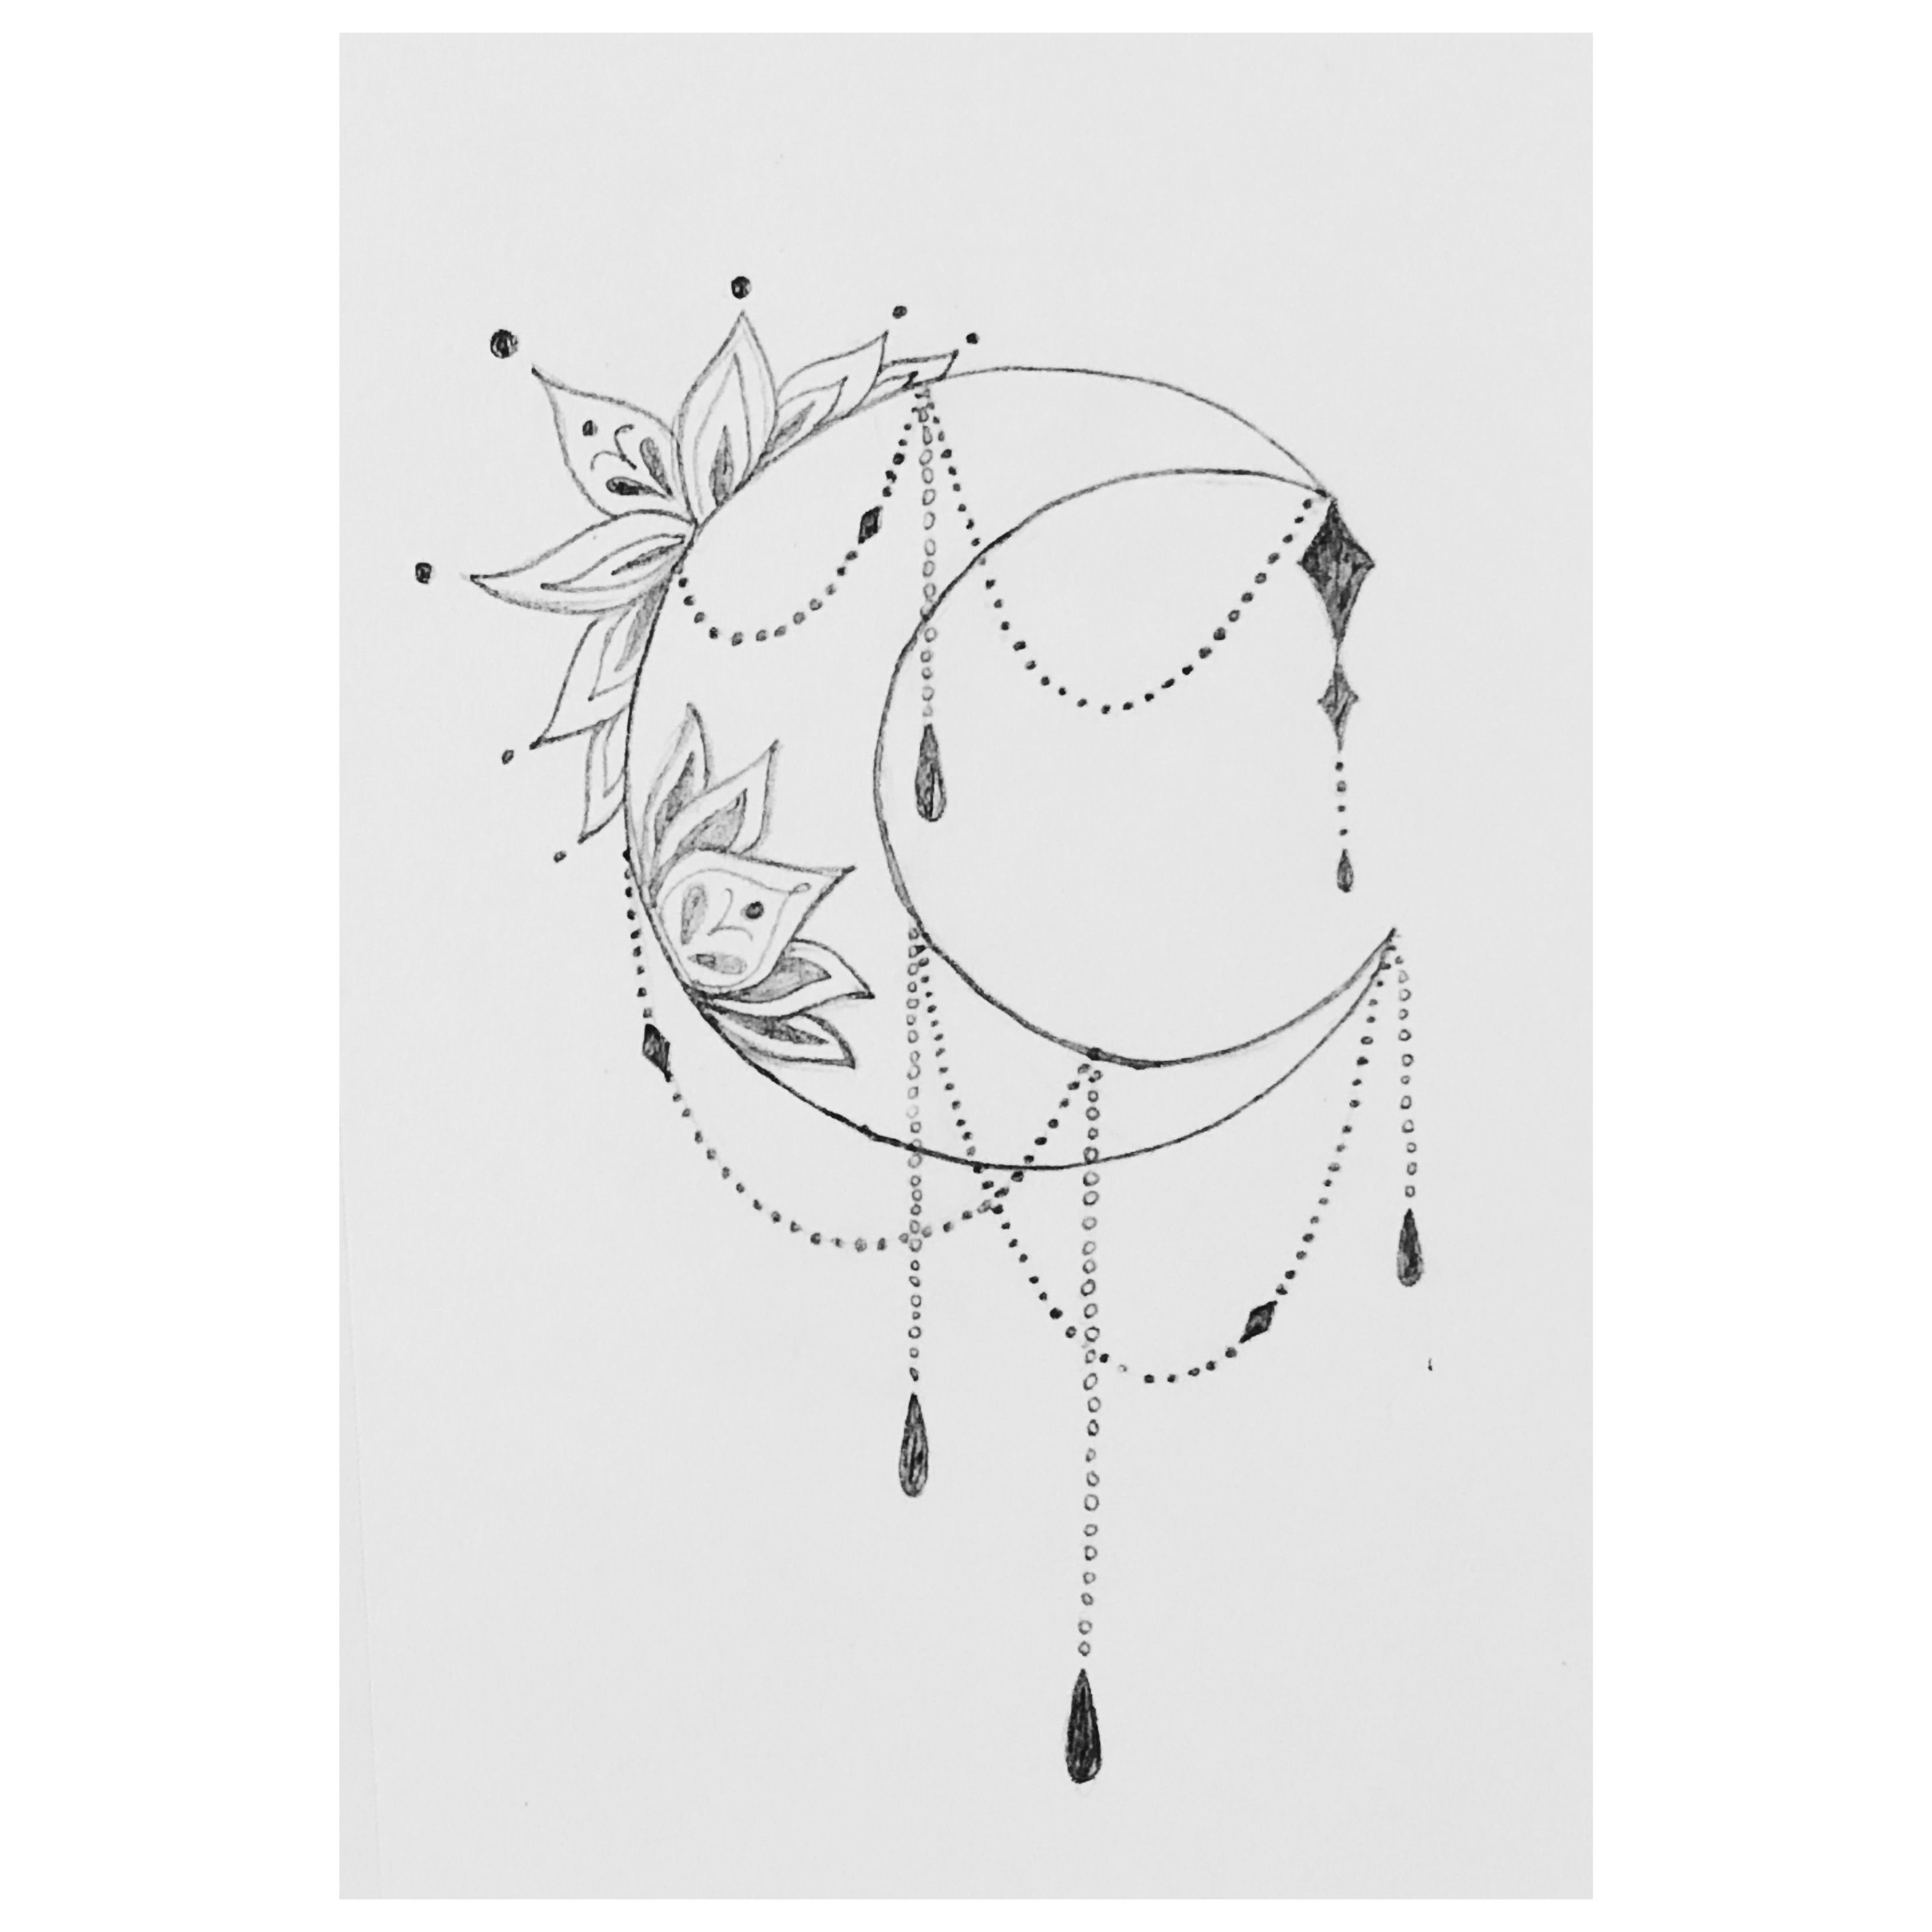 Crescent Moon Drawing Tattoo Idea Sideboob Half Moon Tattoo Moon Tattoo Designs Moon Tattoo